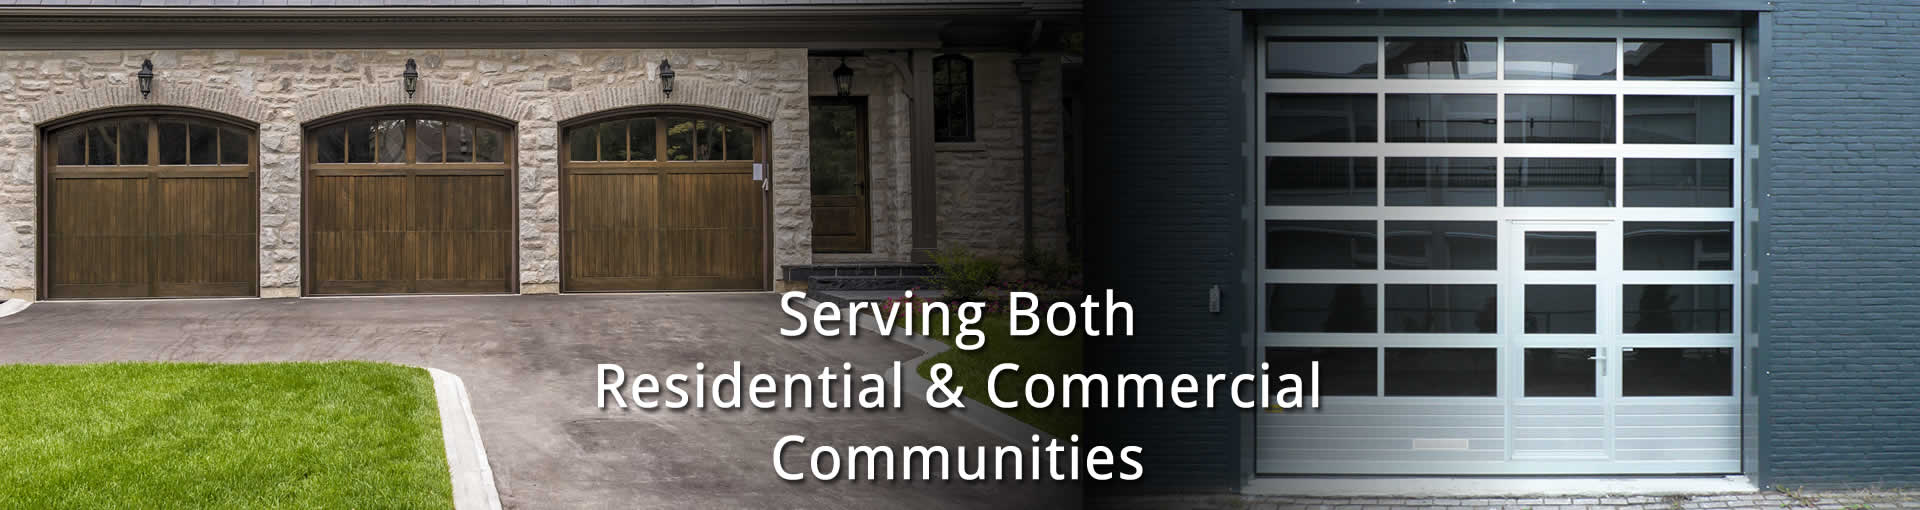 Serving Both the Residential & Commercial Garages